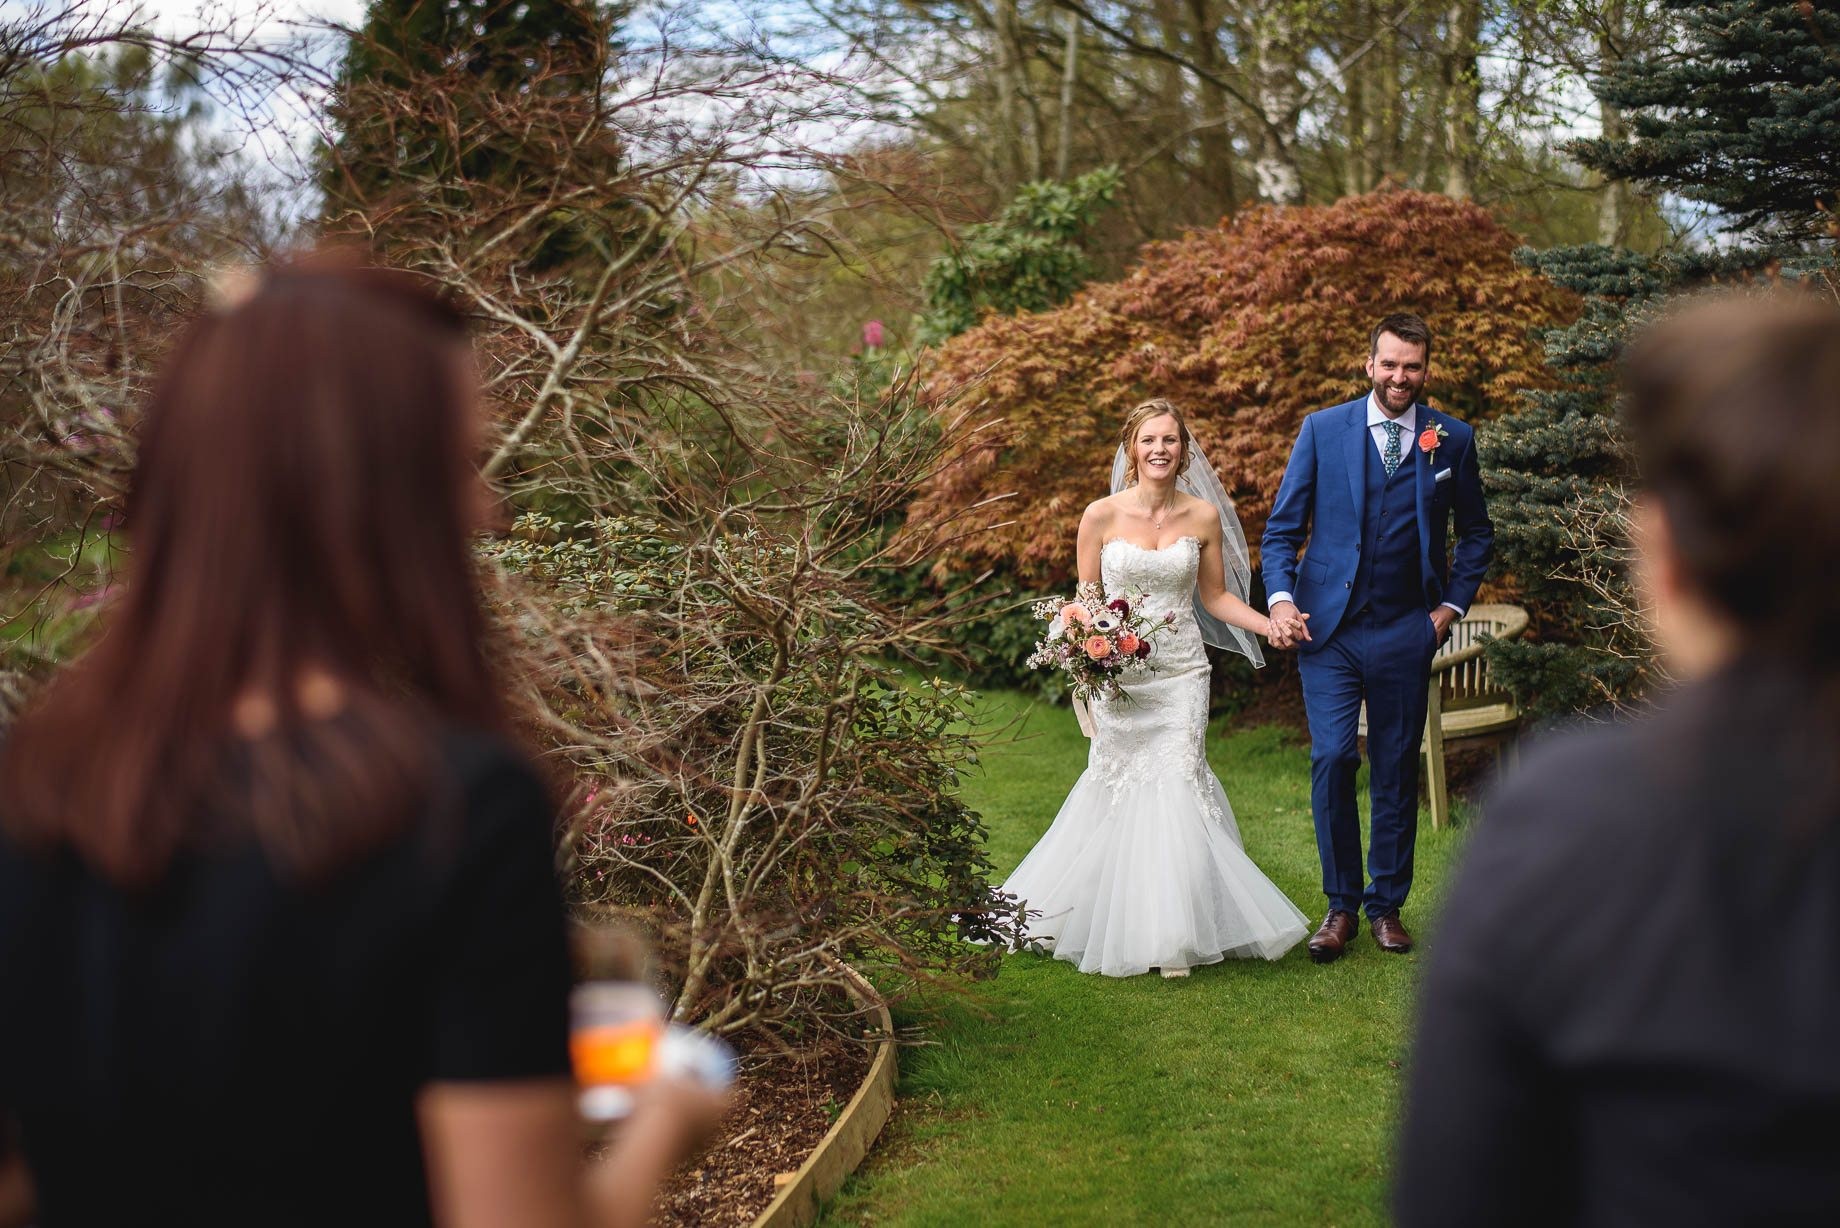 Rivervale Barn wedding photography by Guy Collier - Claire and Simon (96 of 133)